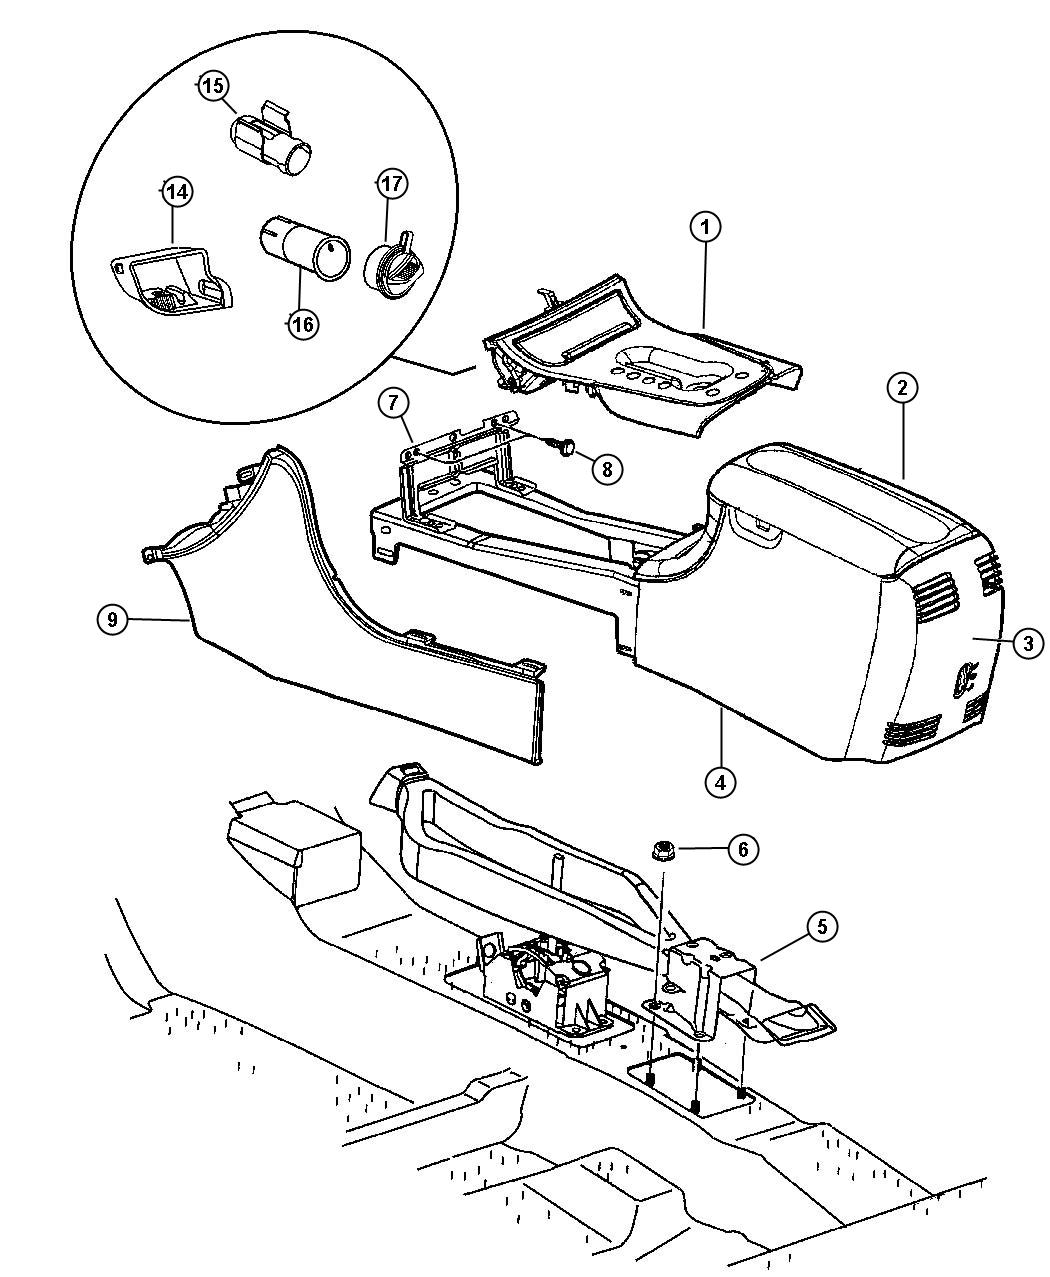 Service manual [Remove 1995 Chrysler Lhs Console